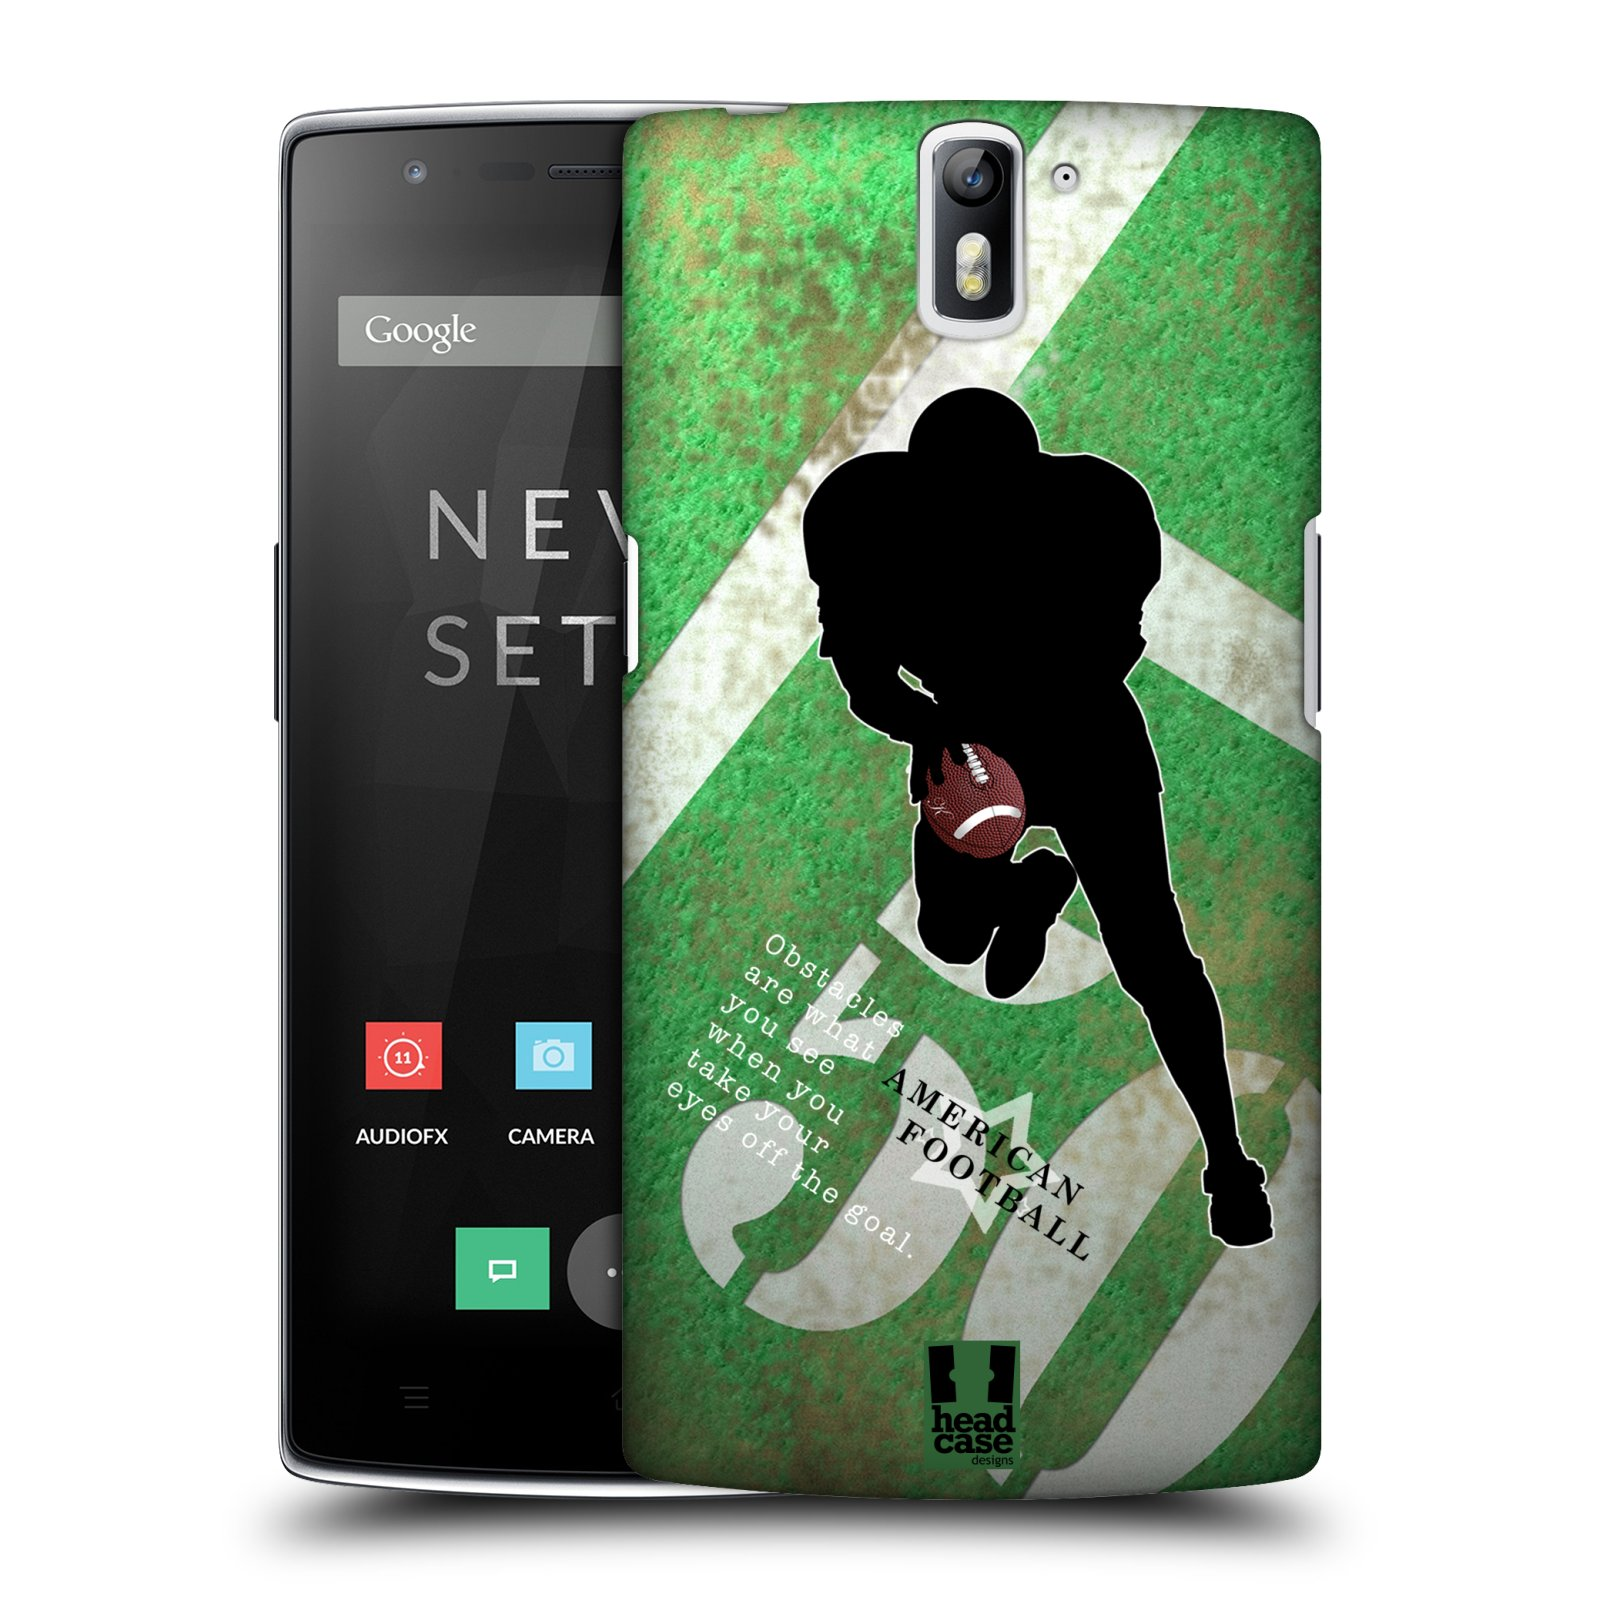 HEAD CASE DESIGNS EXTREME SPORTS COLLECTION 1 HARD BACK CASE FOR ONEPLUS ONE